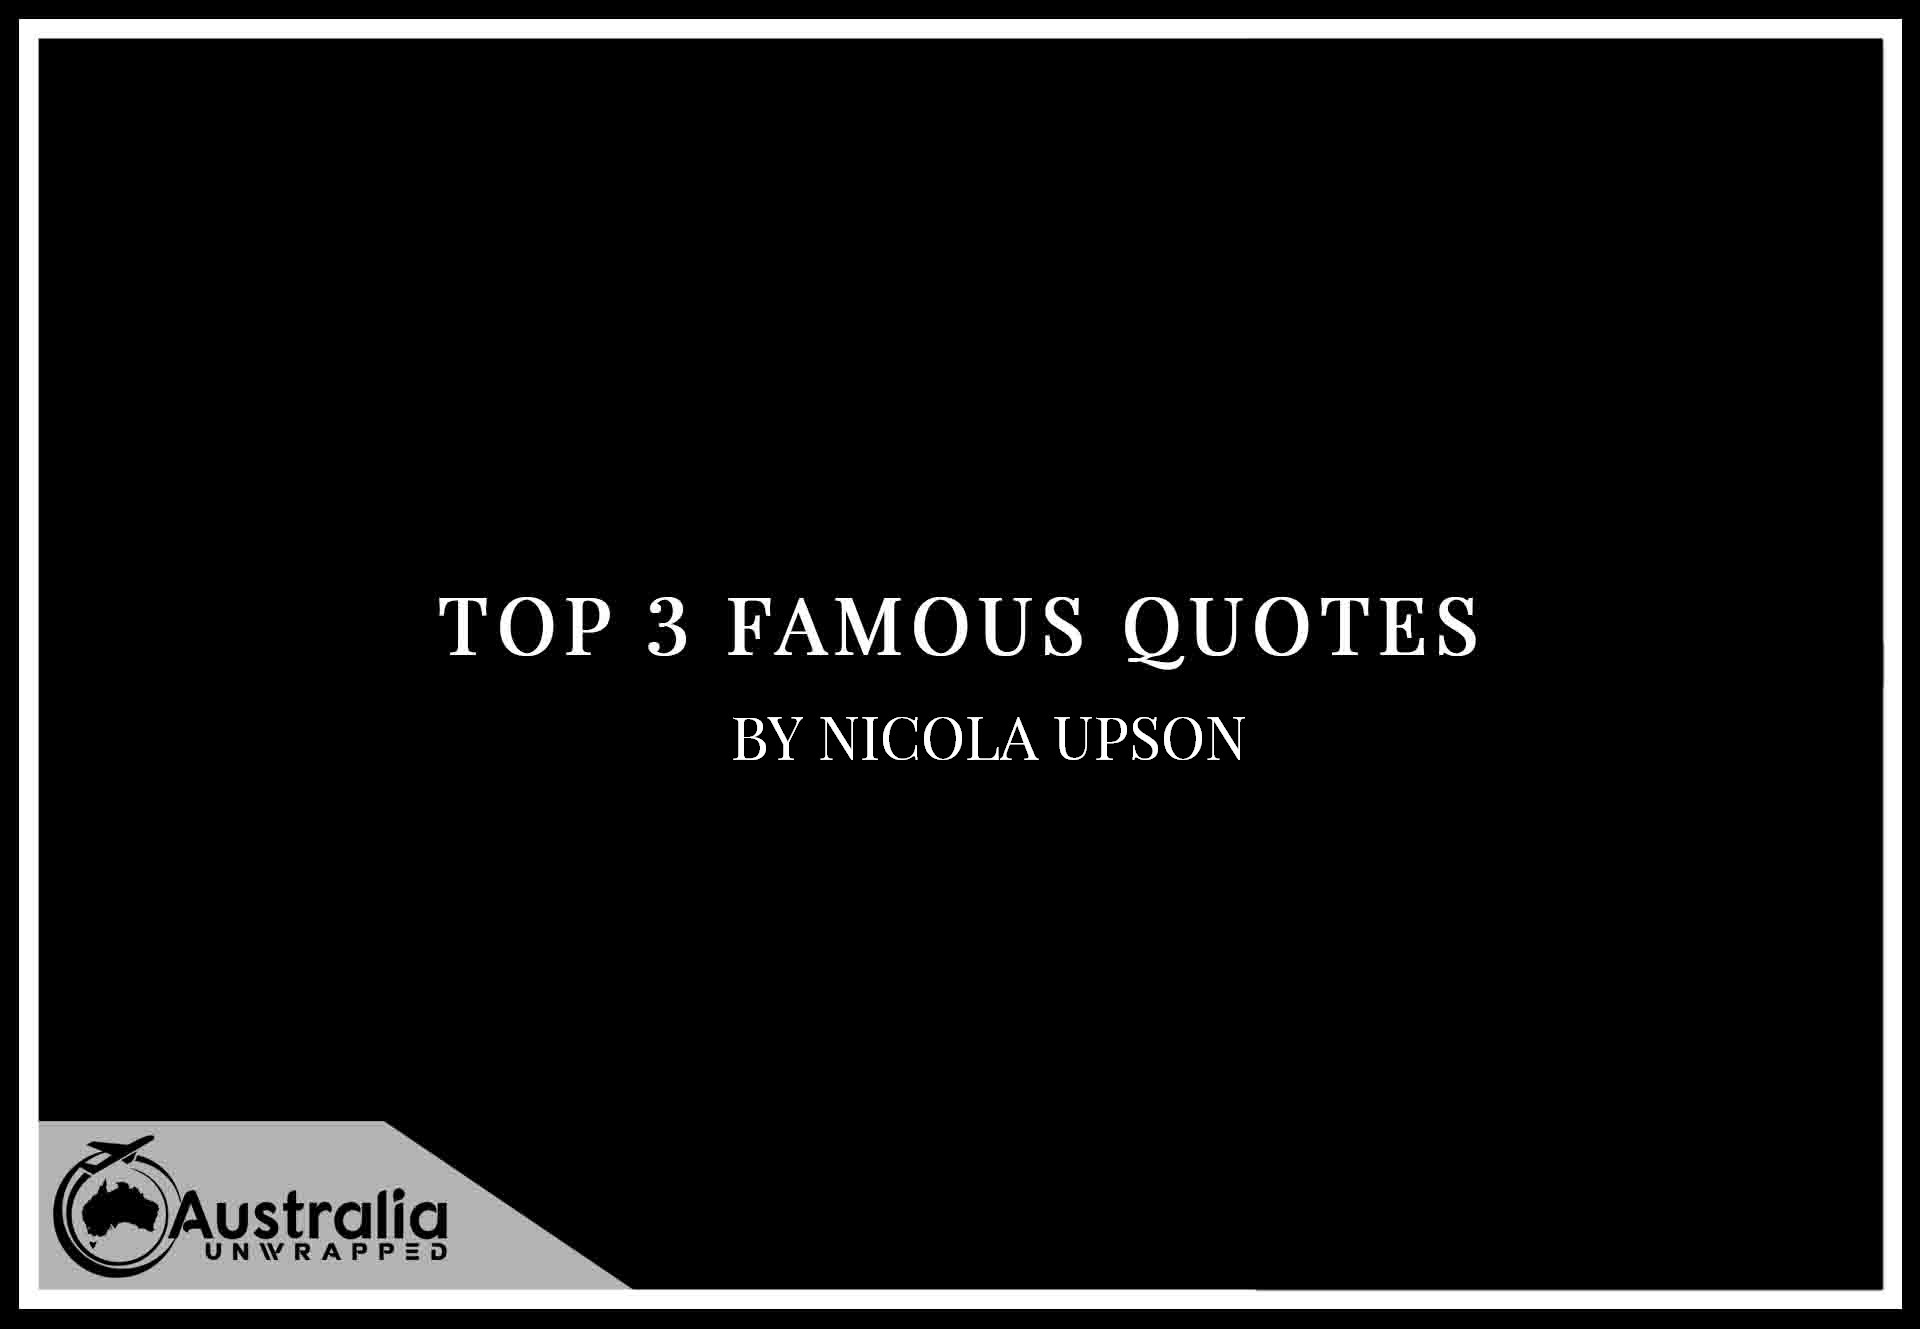 Top 3 Famous Quotes by Author nicola upson